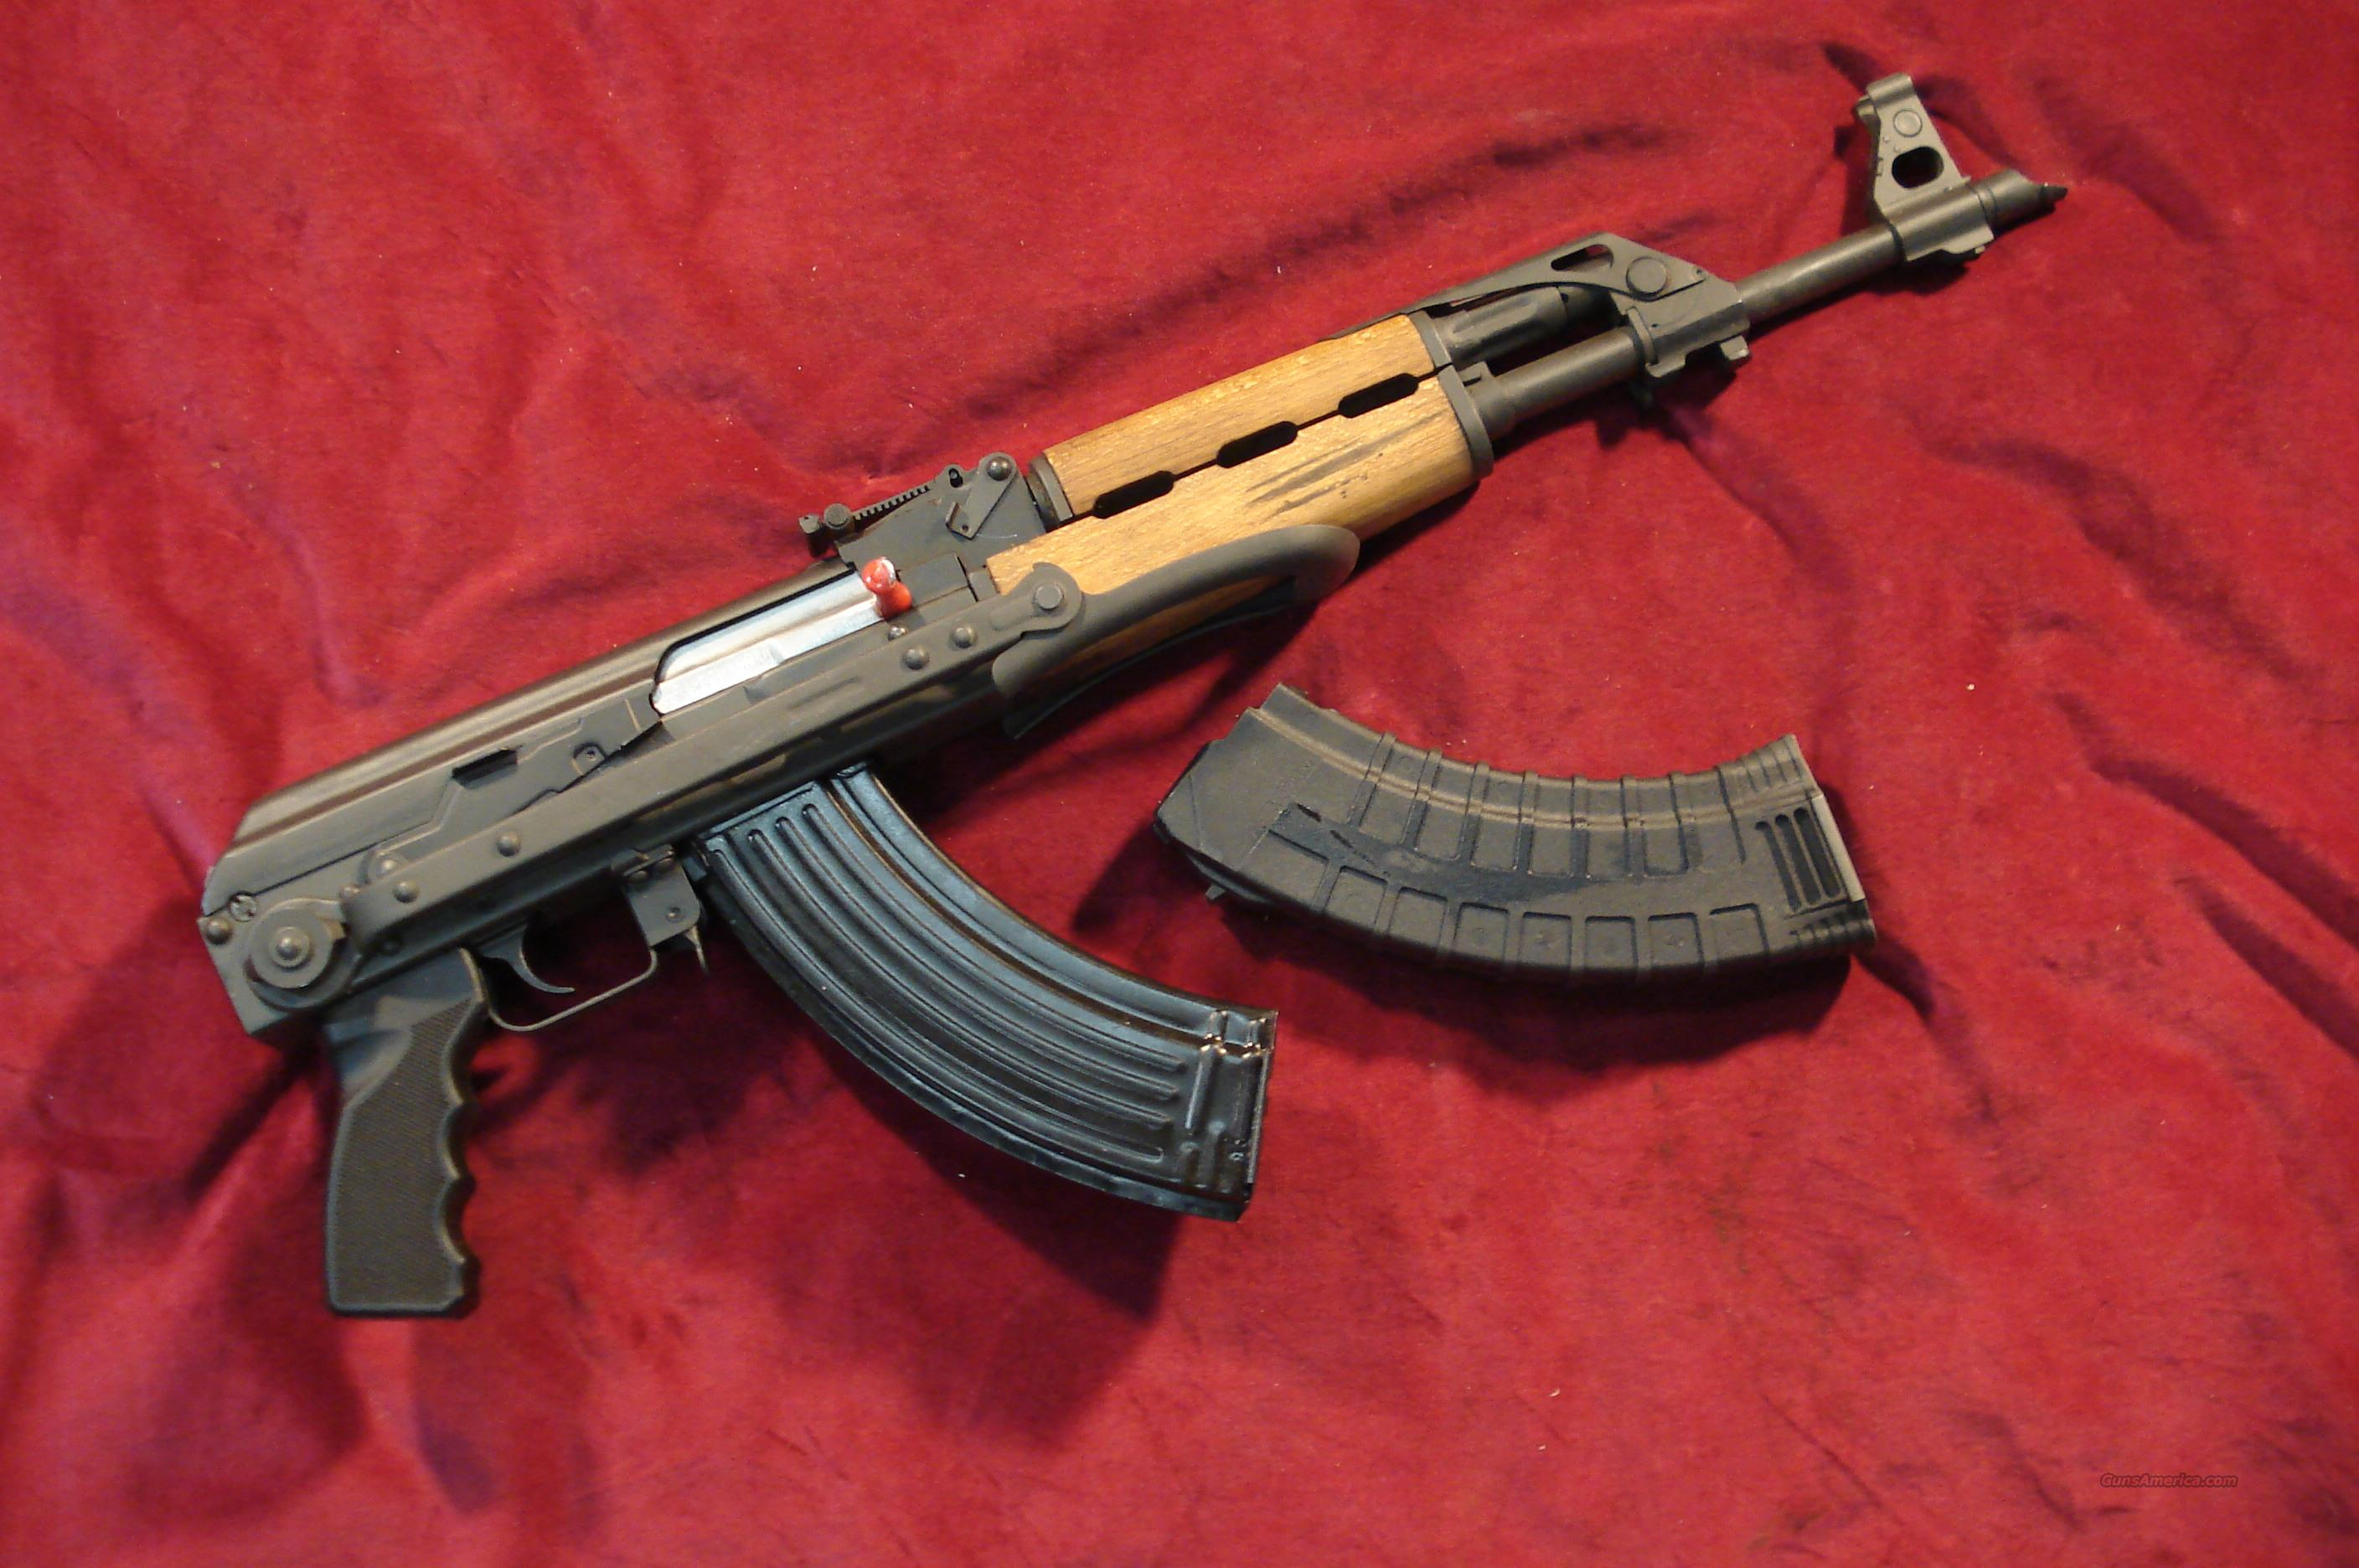 CENTURY ARMS AK-47 YUGO M70AB2 UNDERFOLDER STOCK NEW  Guns > Rifles > AK-47 Rifles (and copies) > Folding Stock